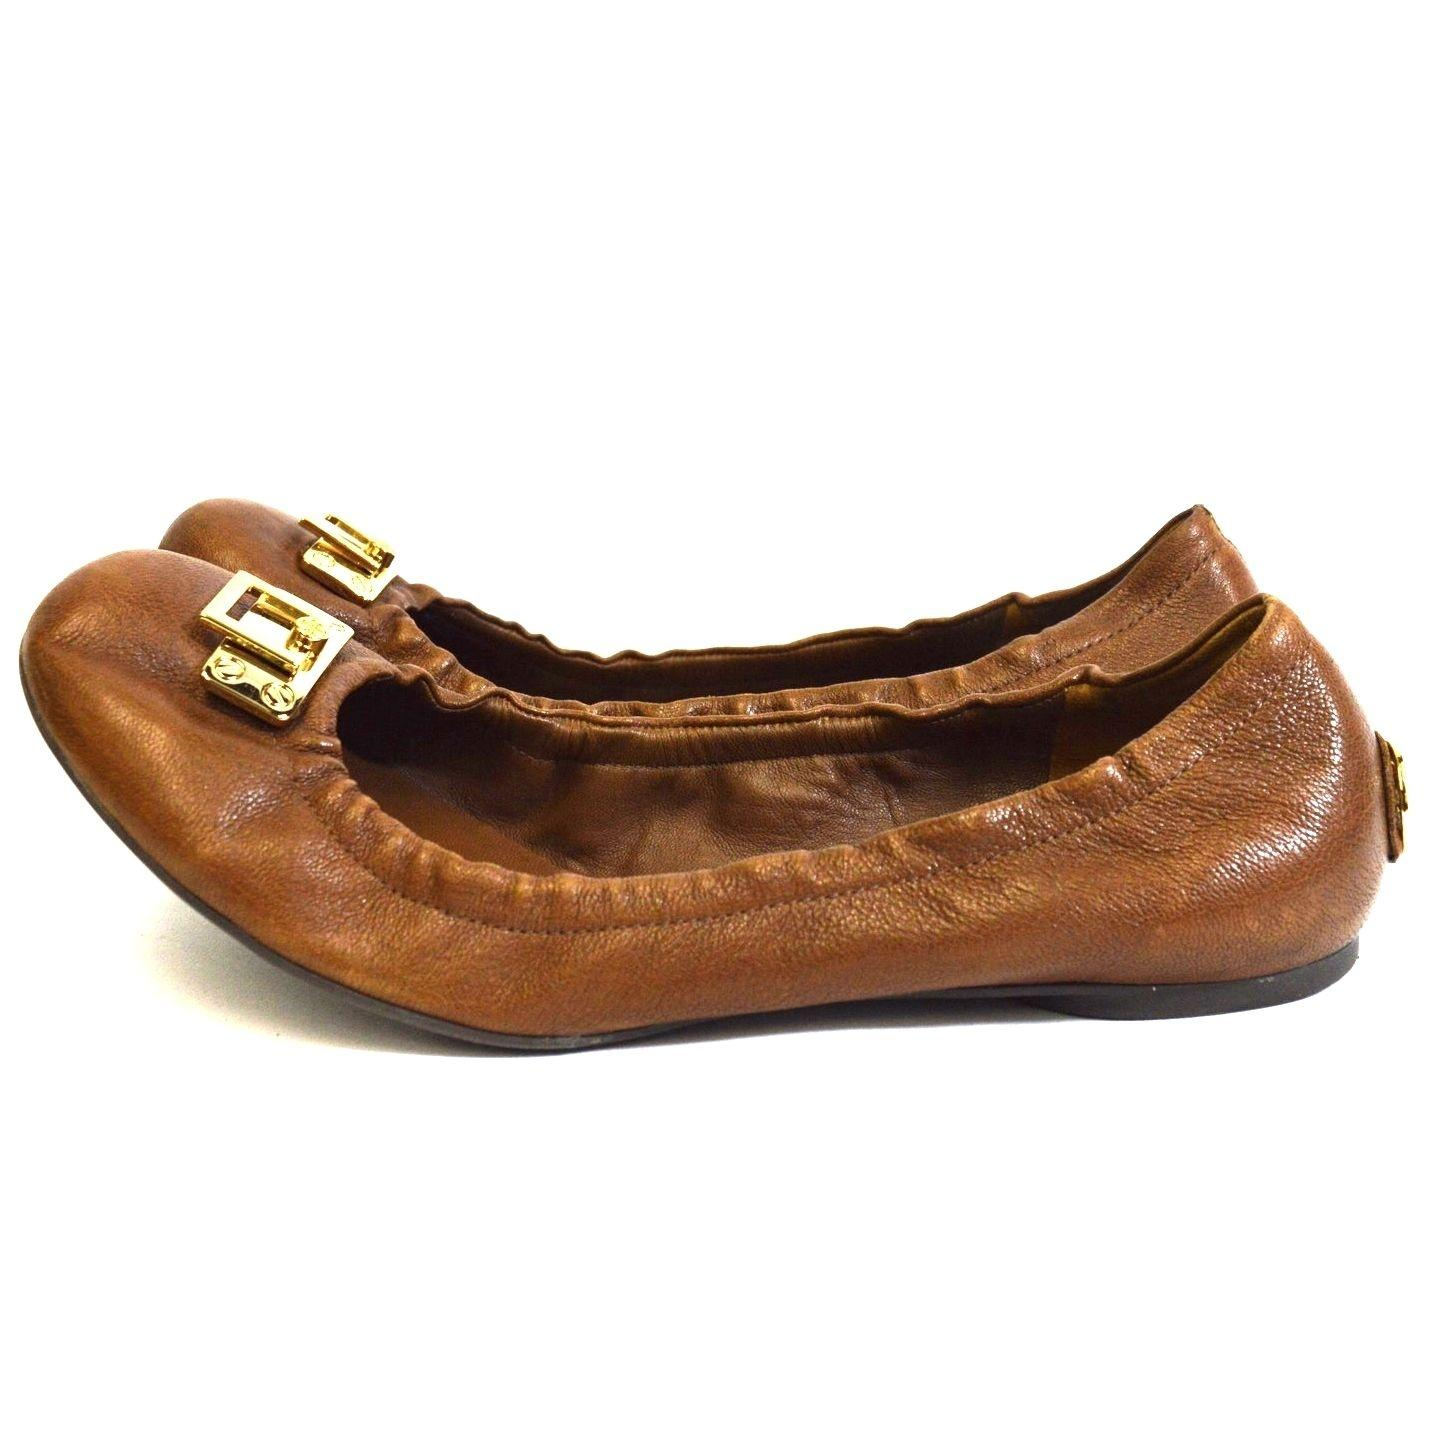 3e6c582b742d authentic lyst tory burch lowell 2 snake smbossed ballet flats in brown  11fcf 0e1ea  amazon tory burch brown heel logo flats size us 9 regular m b  tradesy ...